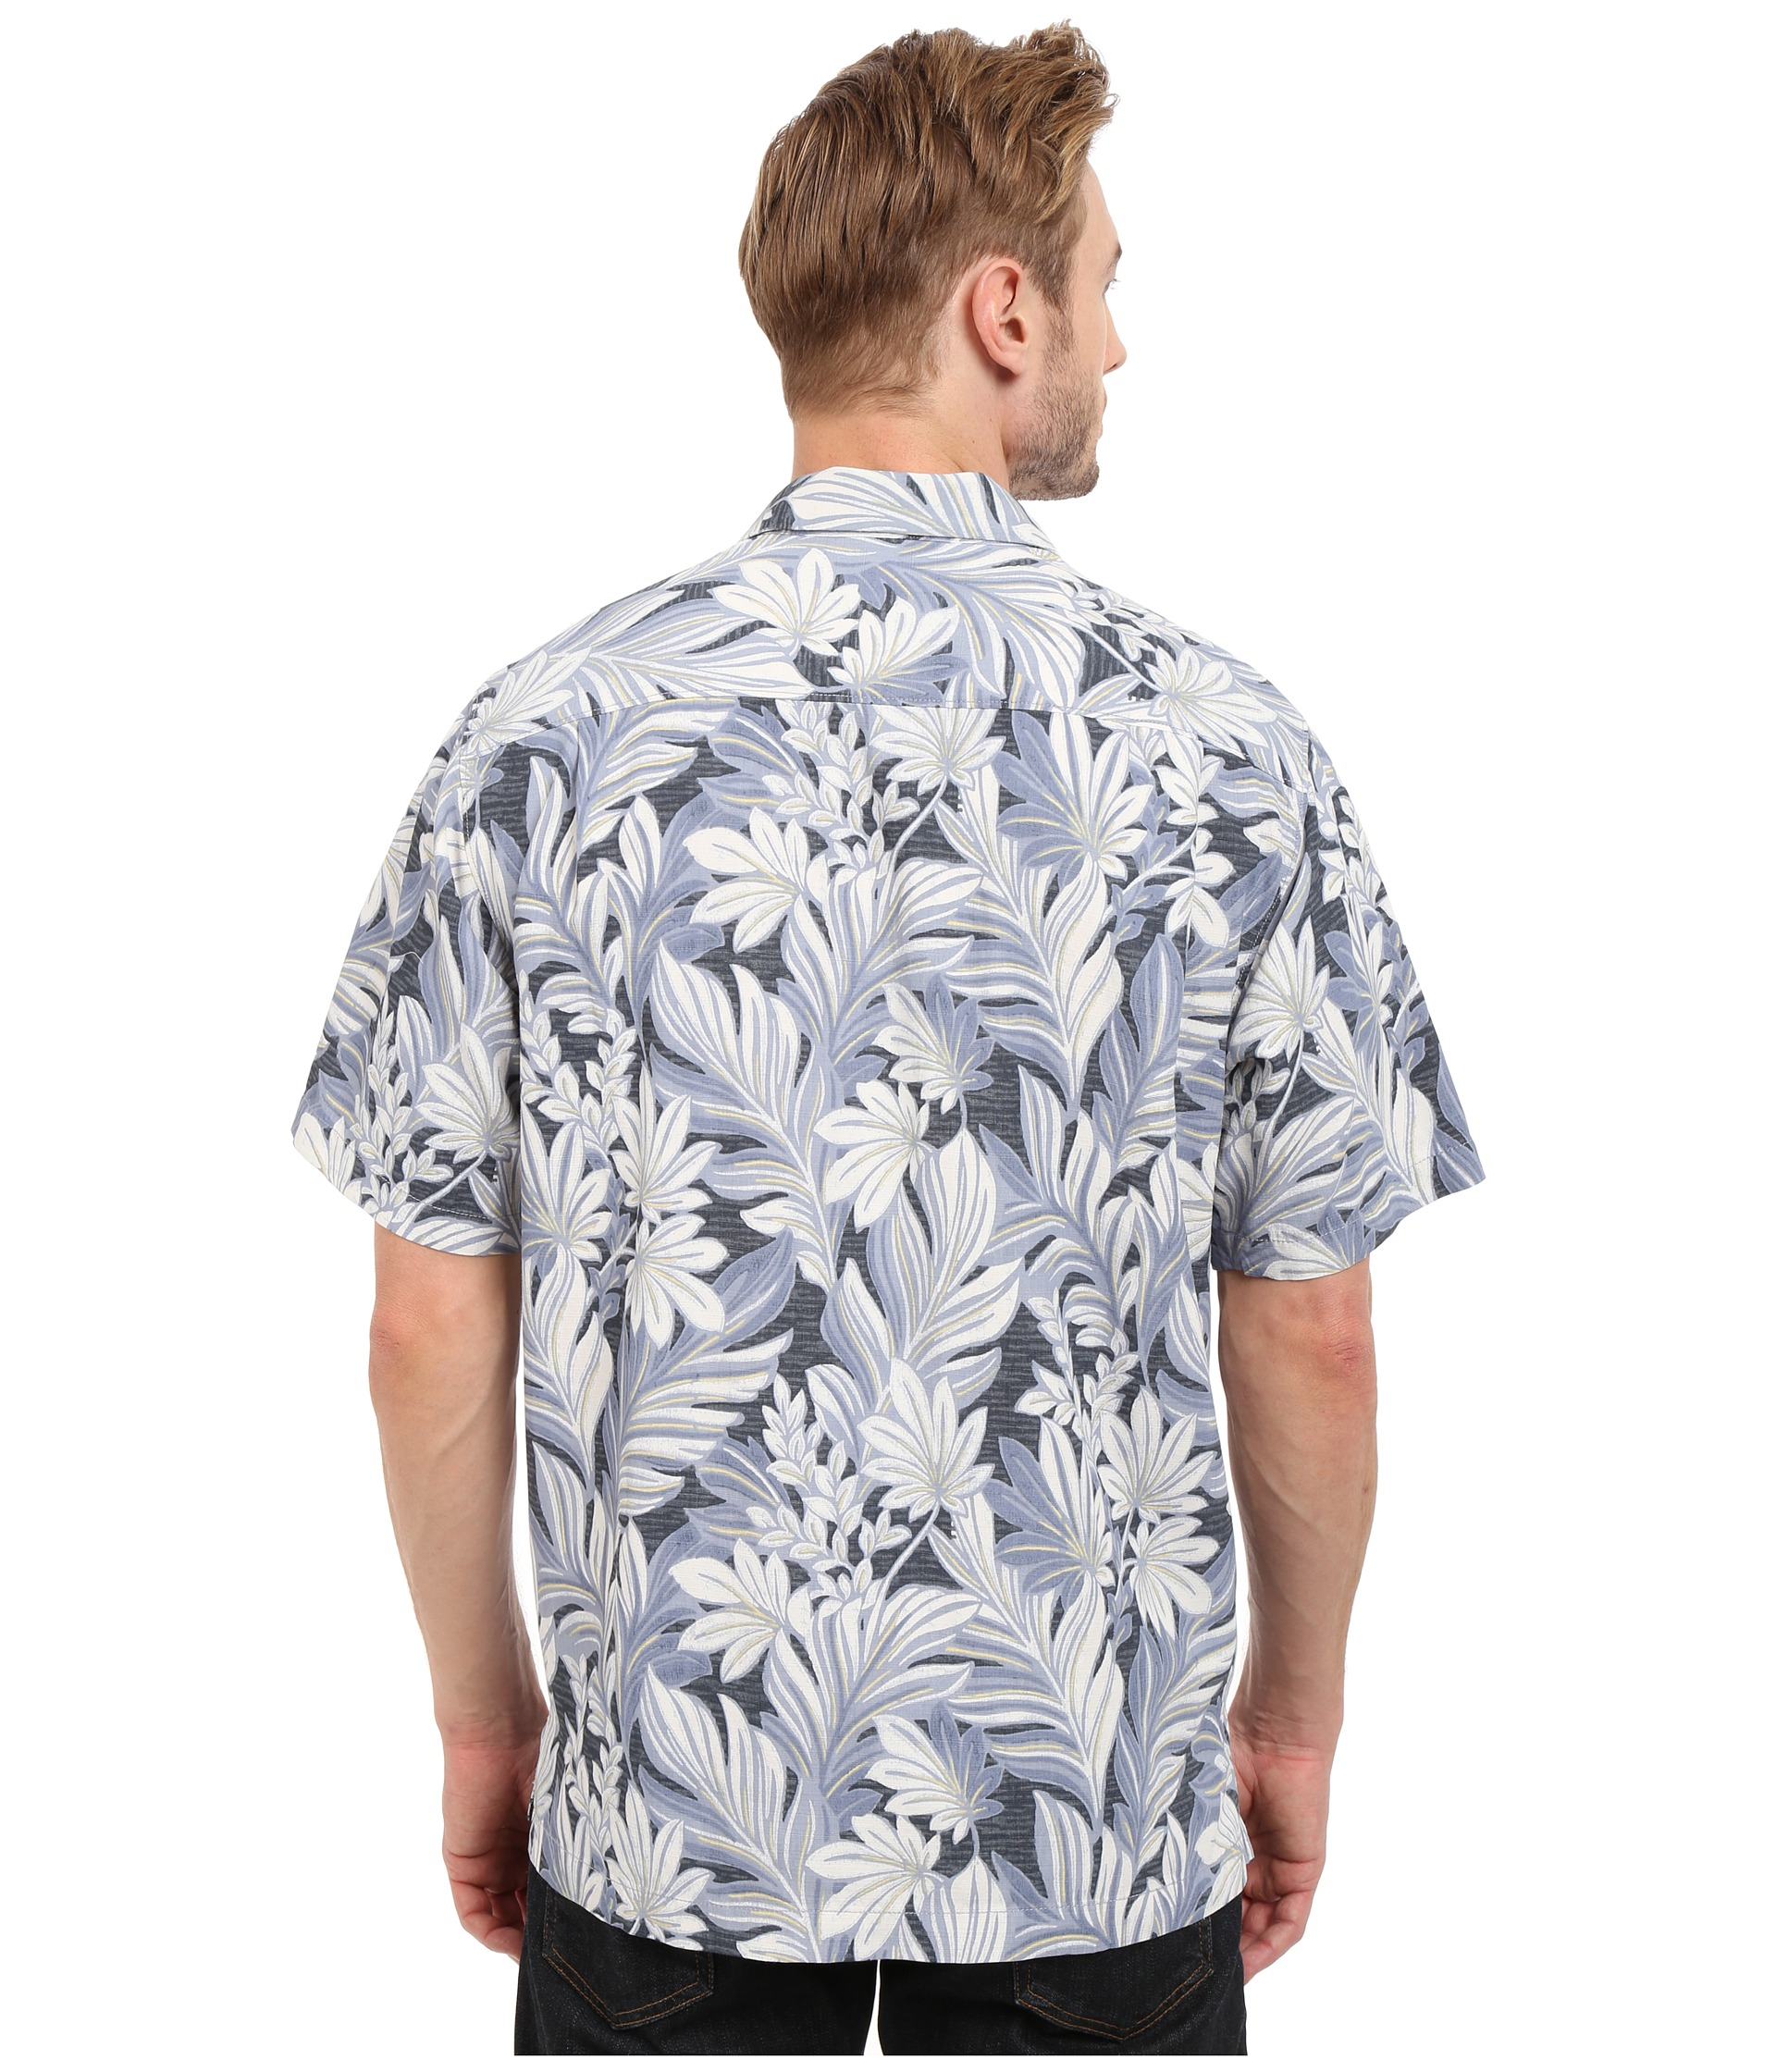 Tommy bahama garden of hope and courage camp shirt black for Tommy bahama florida shirt